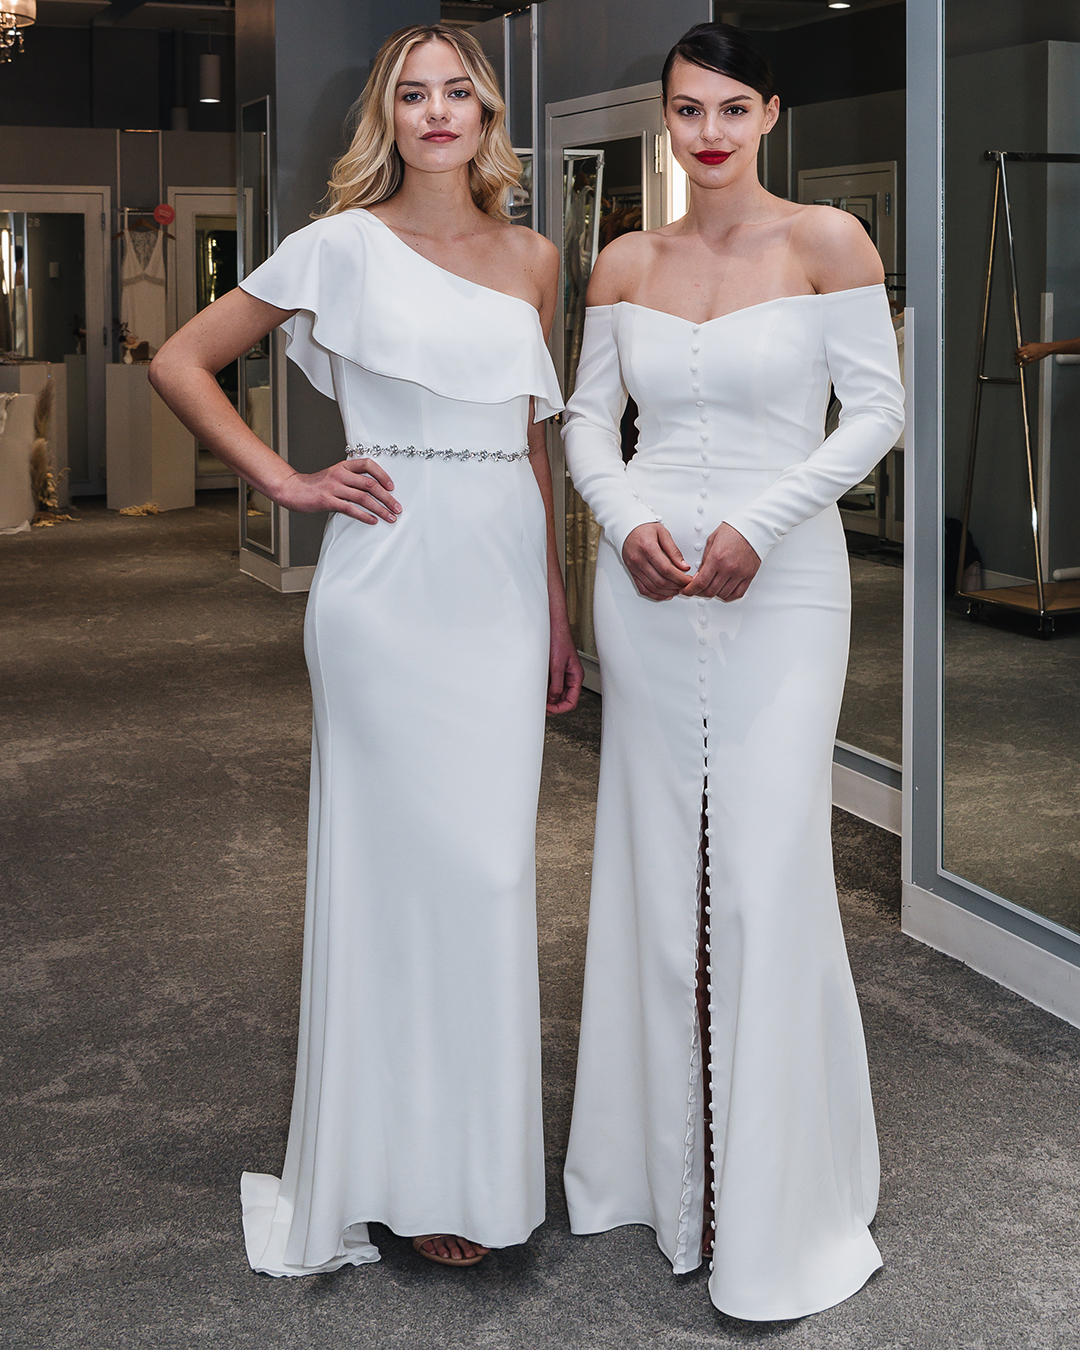 Two women standing in bridal store in modern white wedding dresses.